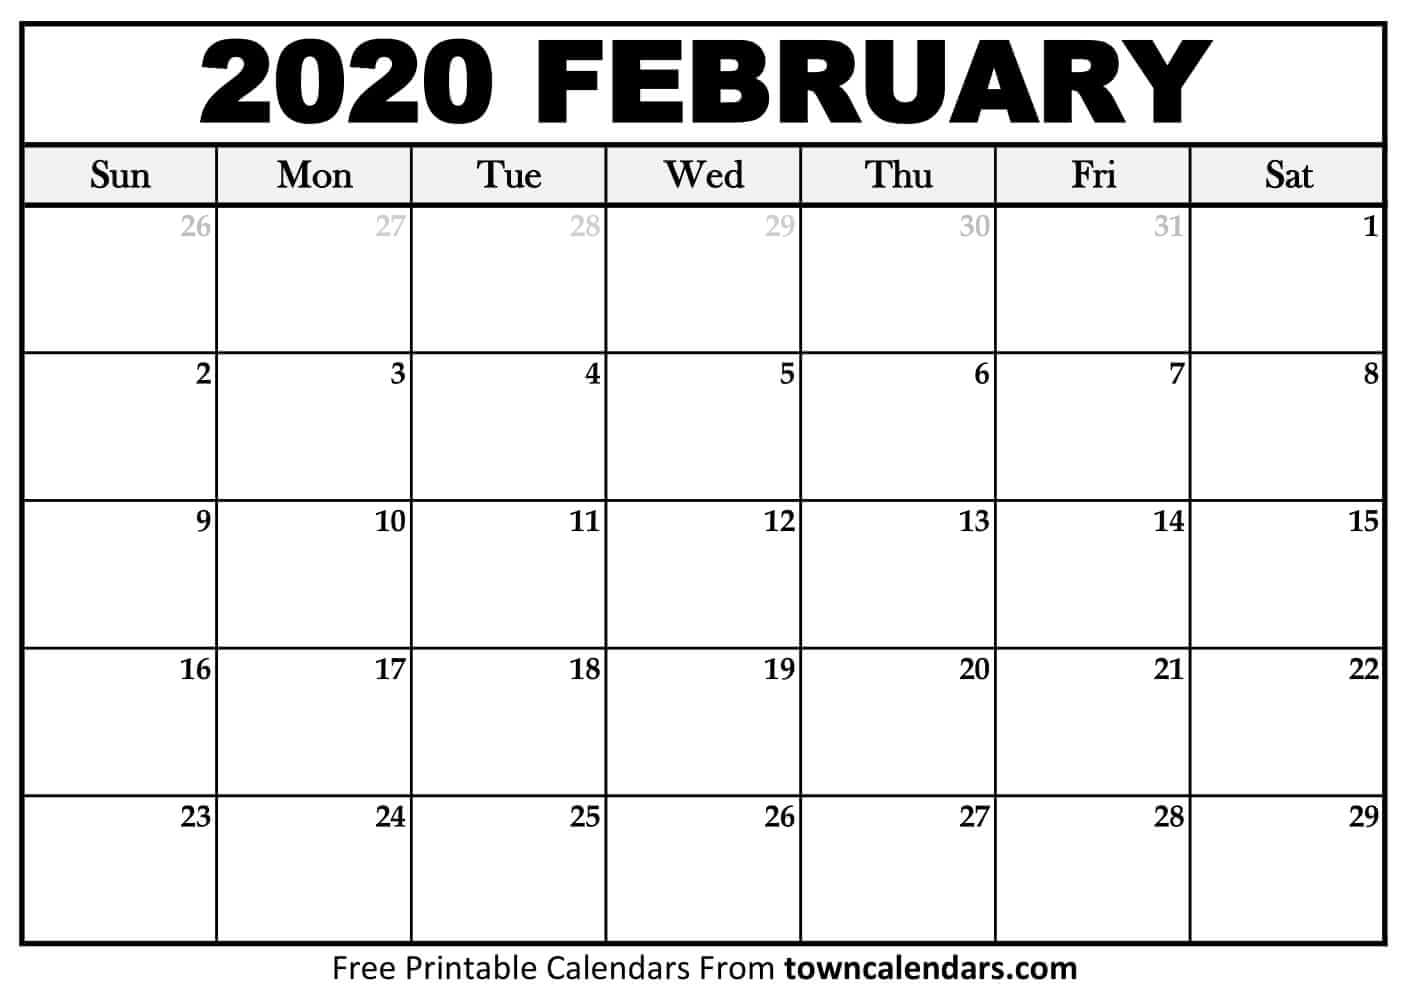 Printable February 2020 Calendar - Towncalendars pertaining to February 2020 Calender That I Can Fill In